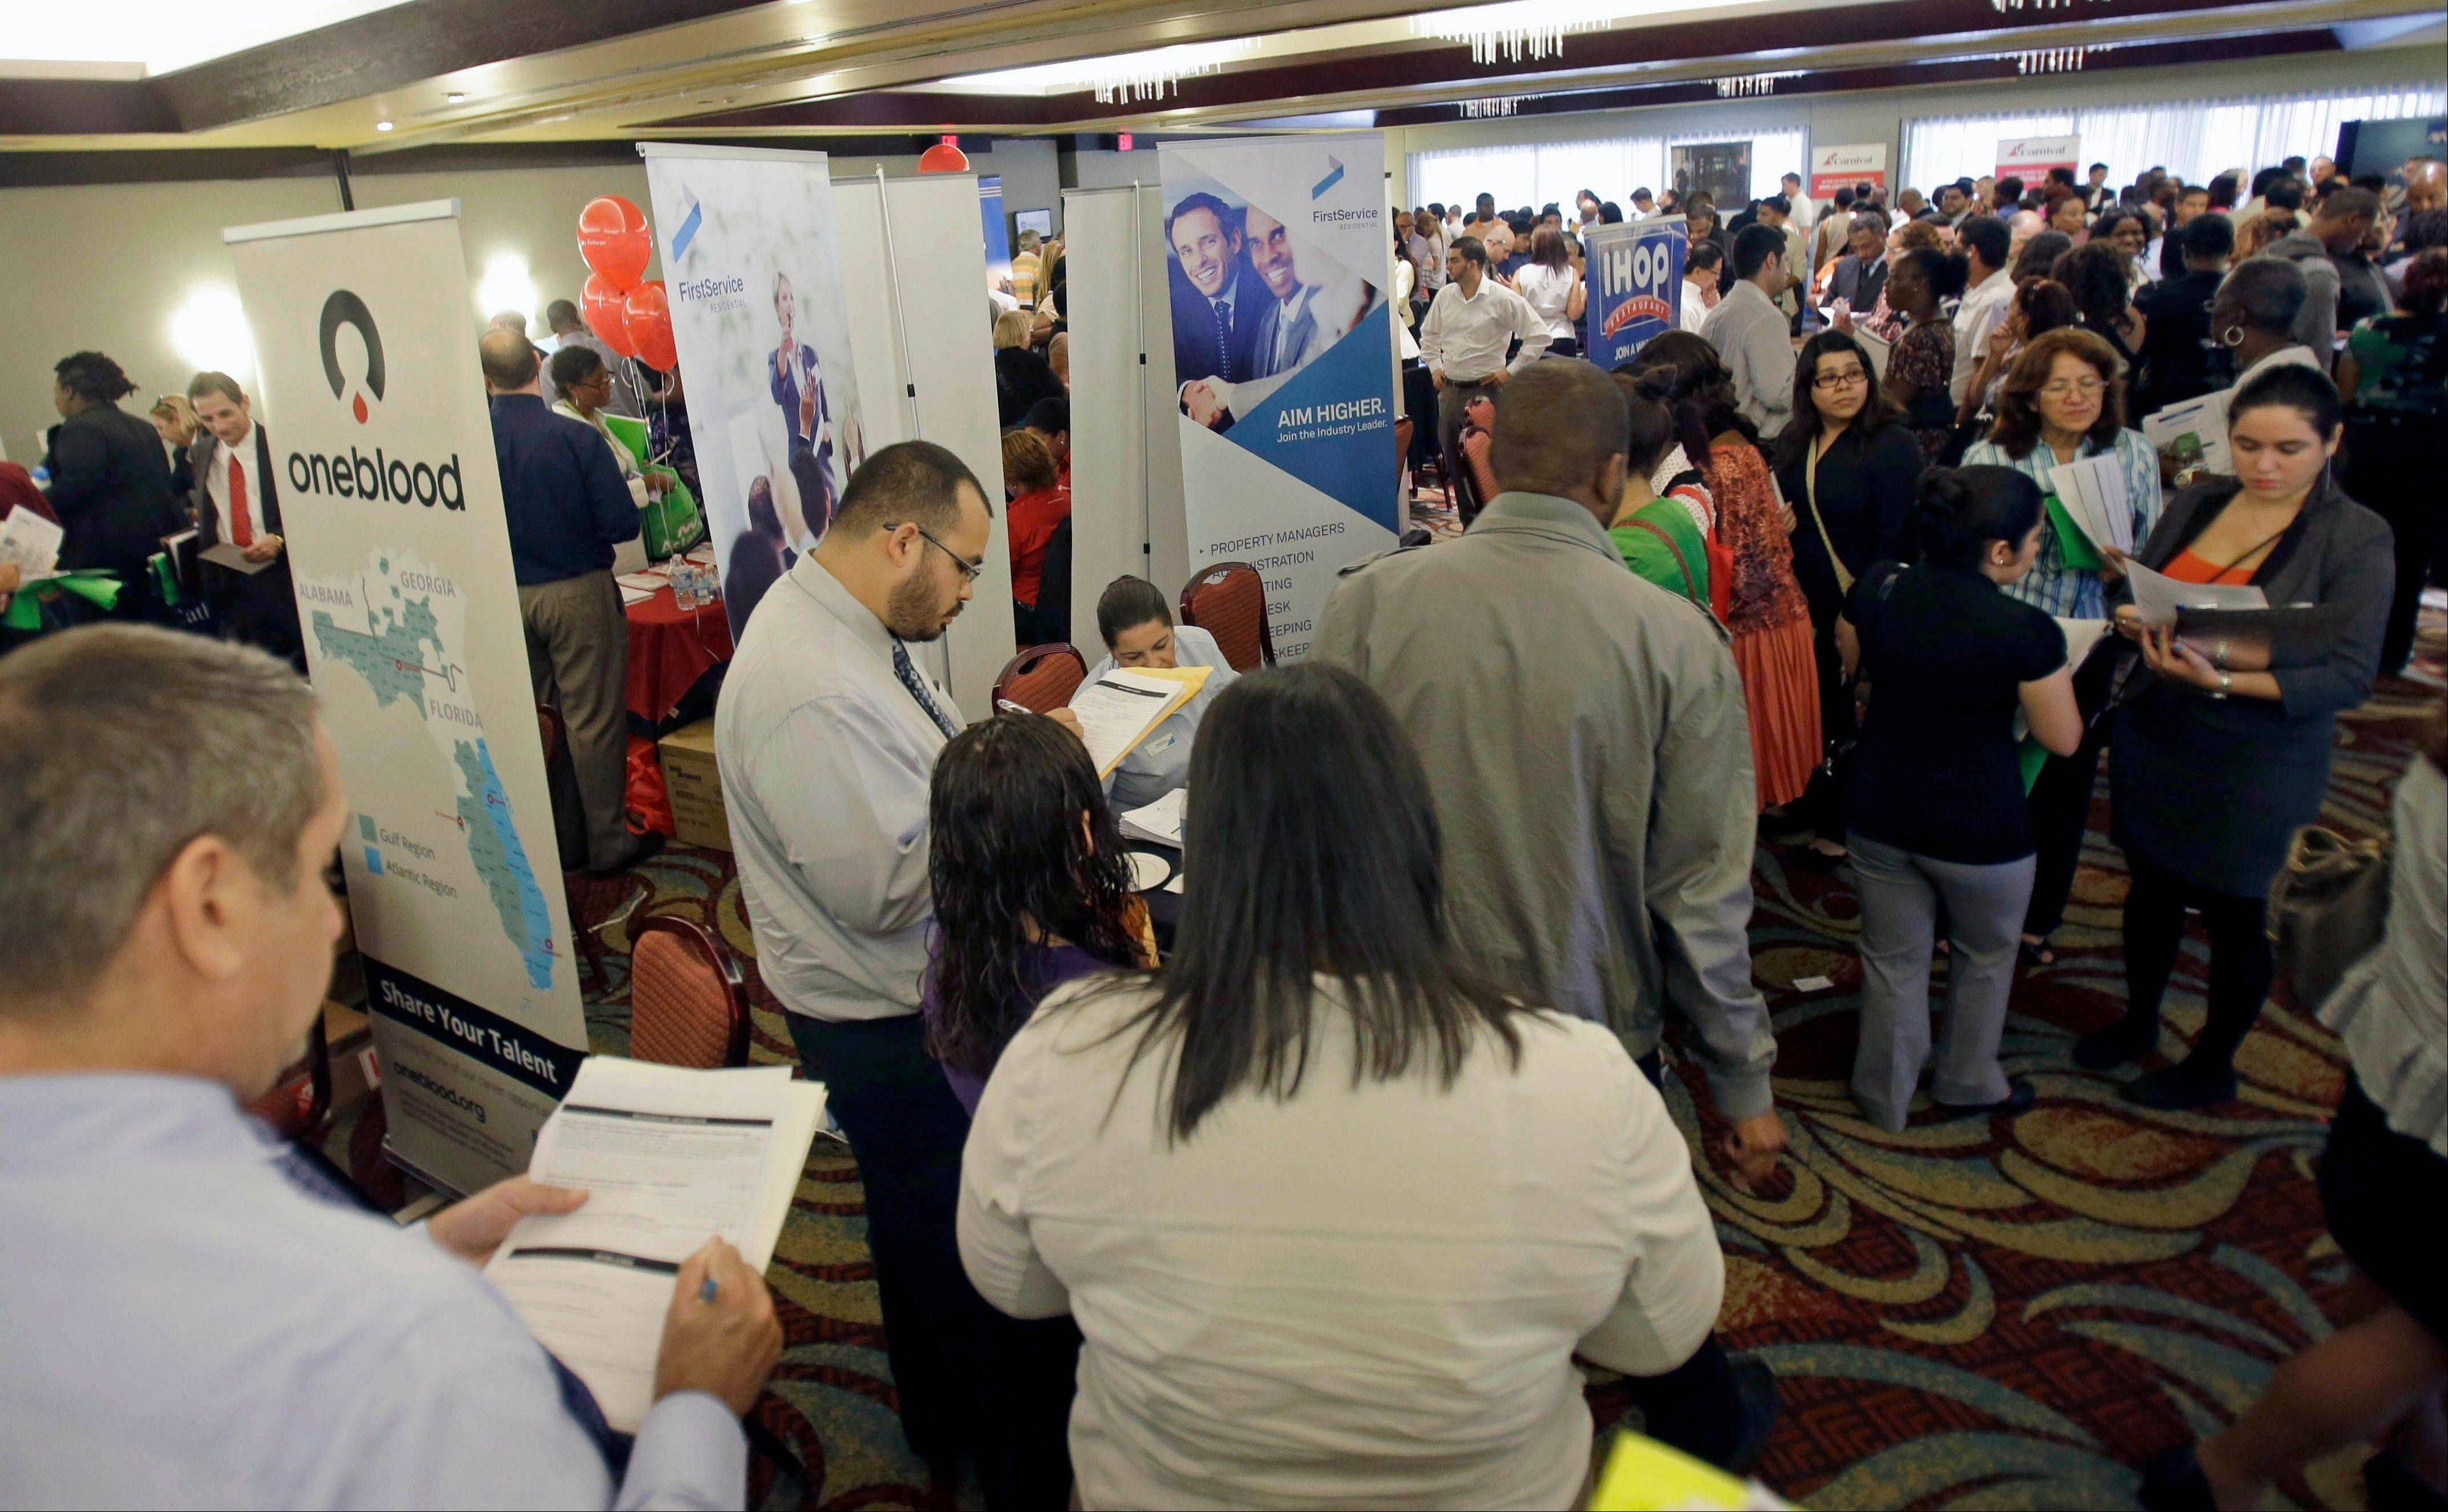 Job seekers check out companies at a job fair in Miami Lakes, Fla. More than 1 million Americans are bracing for a harrowing, post-Christmas jolt as federal unemployment benefits come to a sudden halt this weekend.